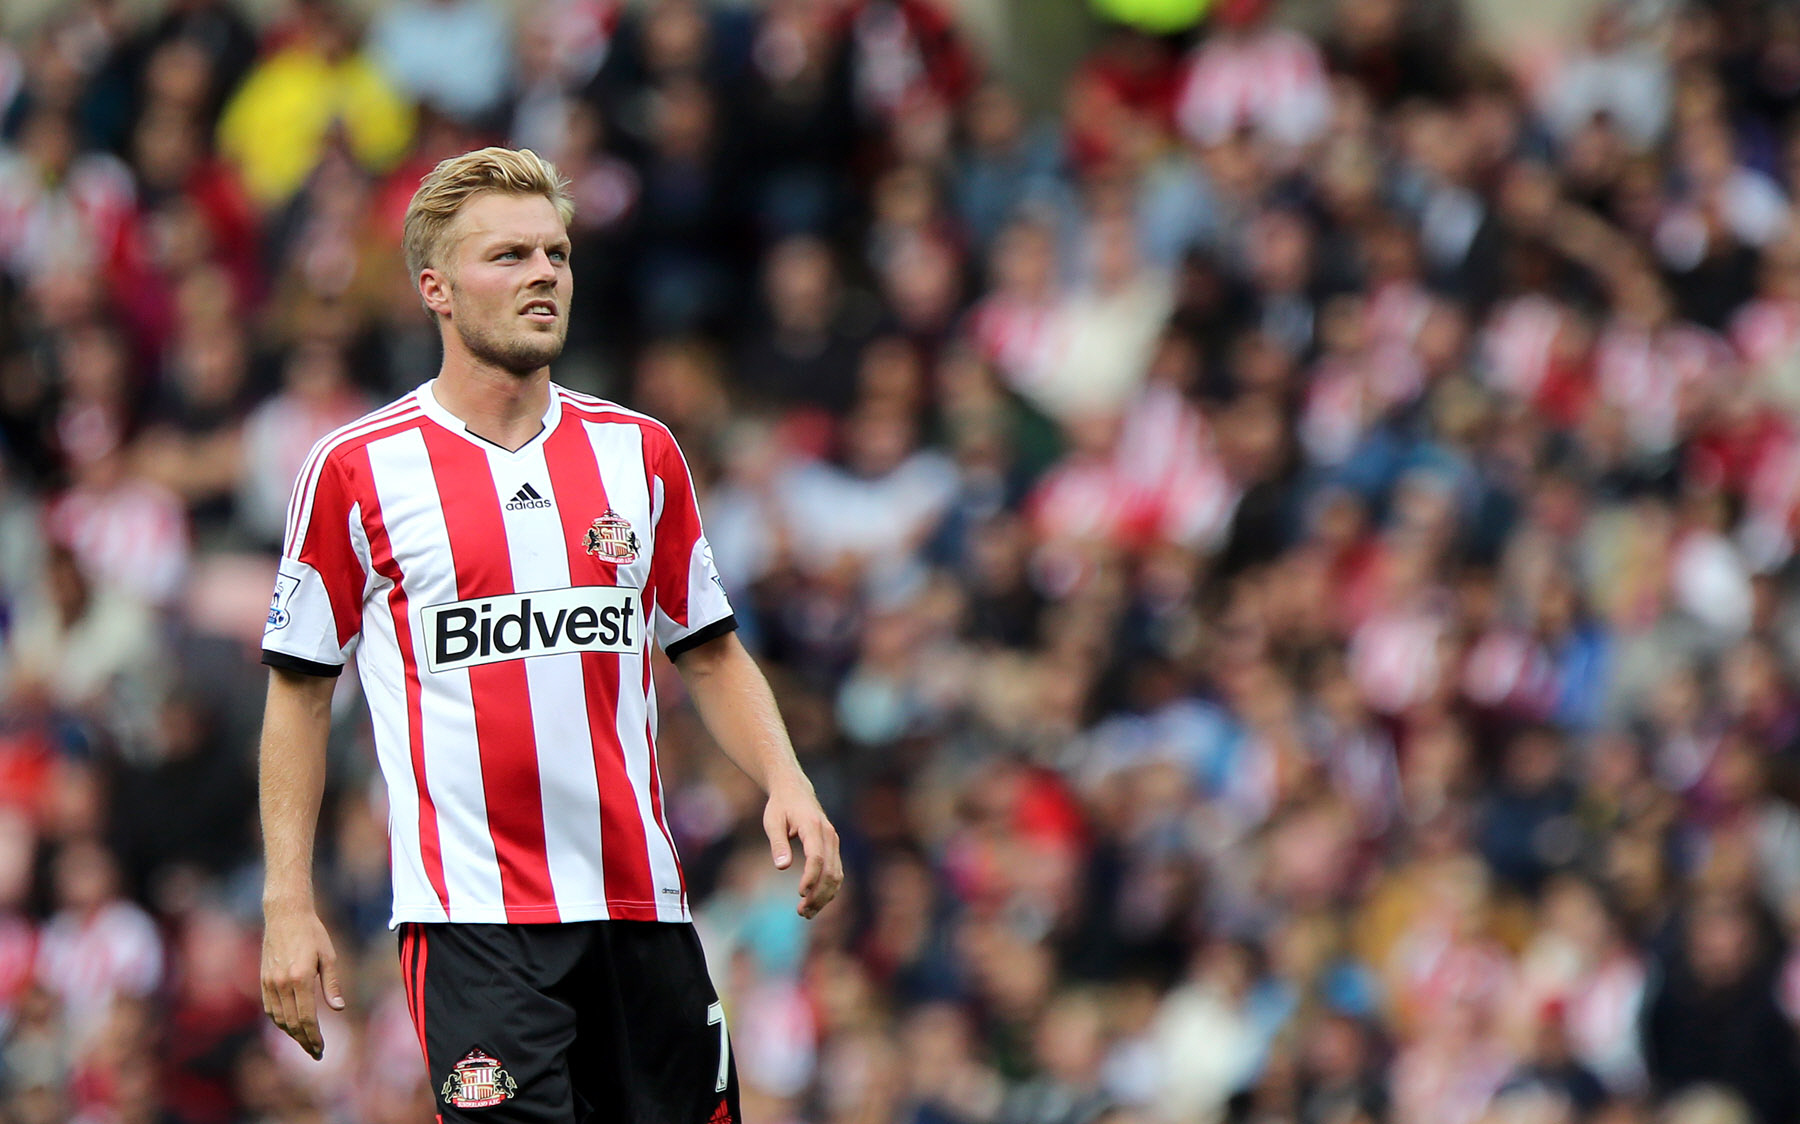 BEEN THERE: Sunderland midfielder Seb Larsson won the League Cup with Birmingham in 2011